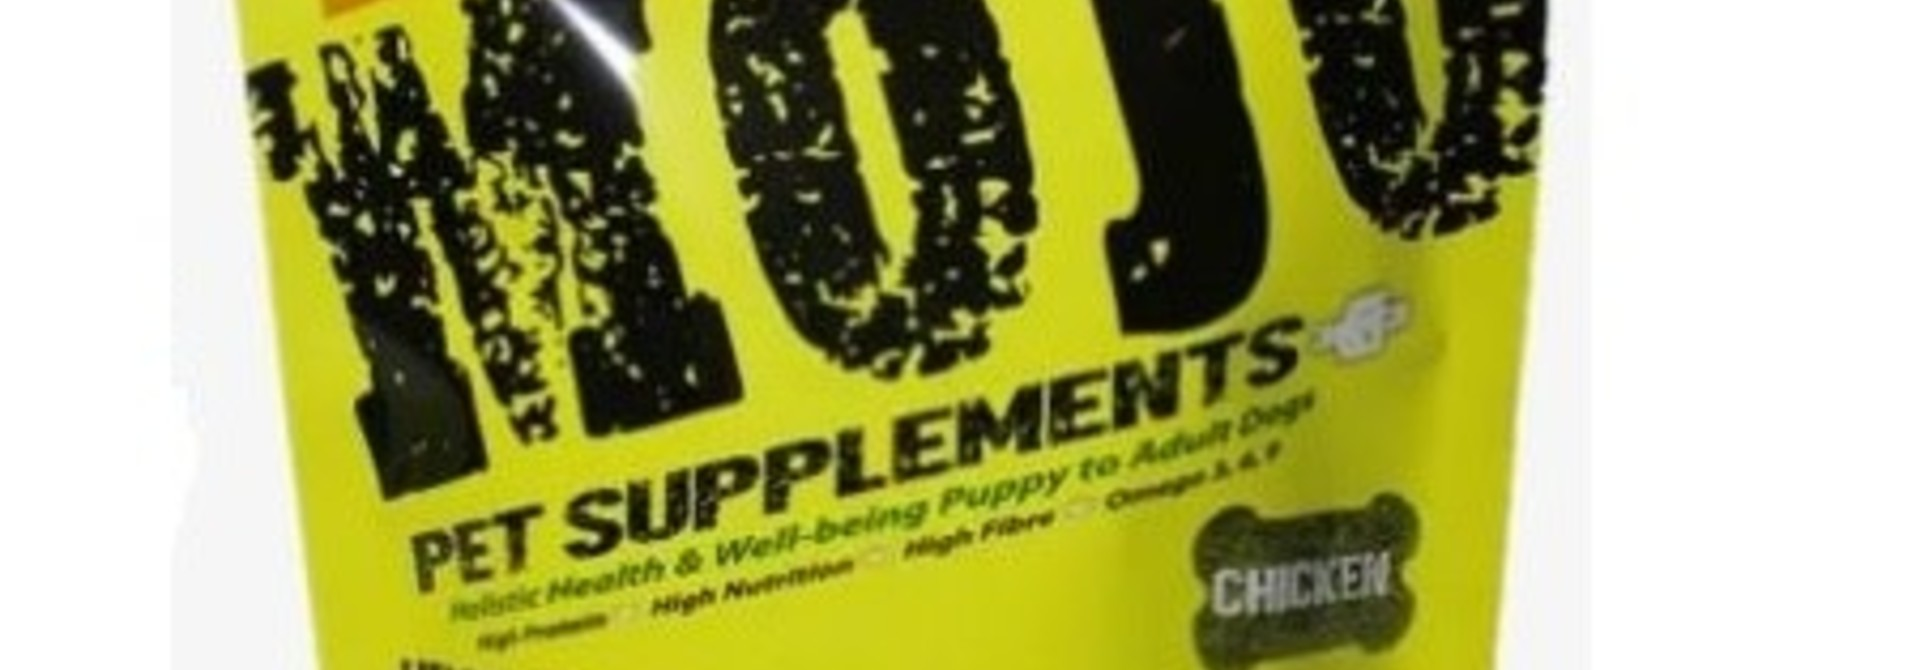 Mojo Supplements Chicken w/ Hemp Sativa Oil